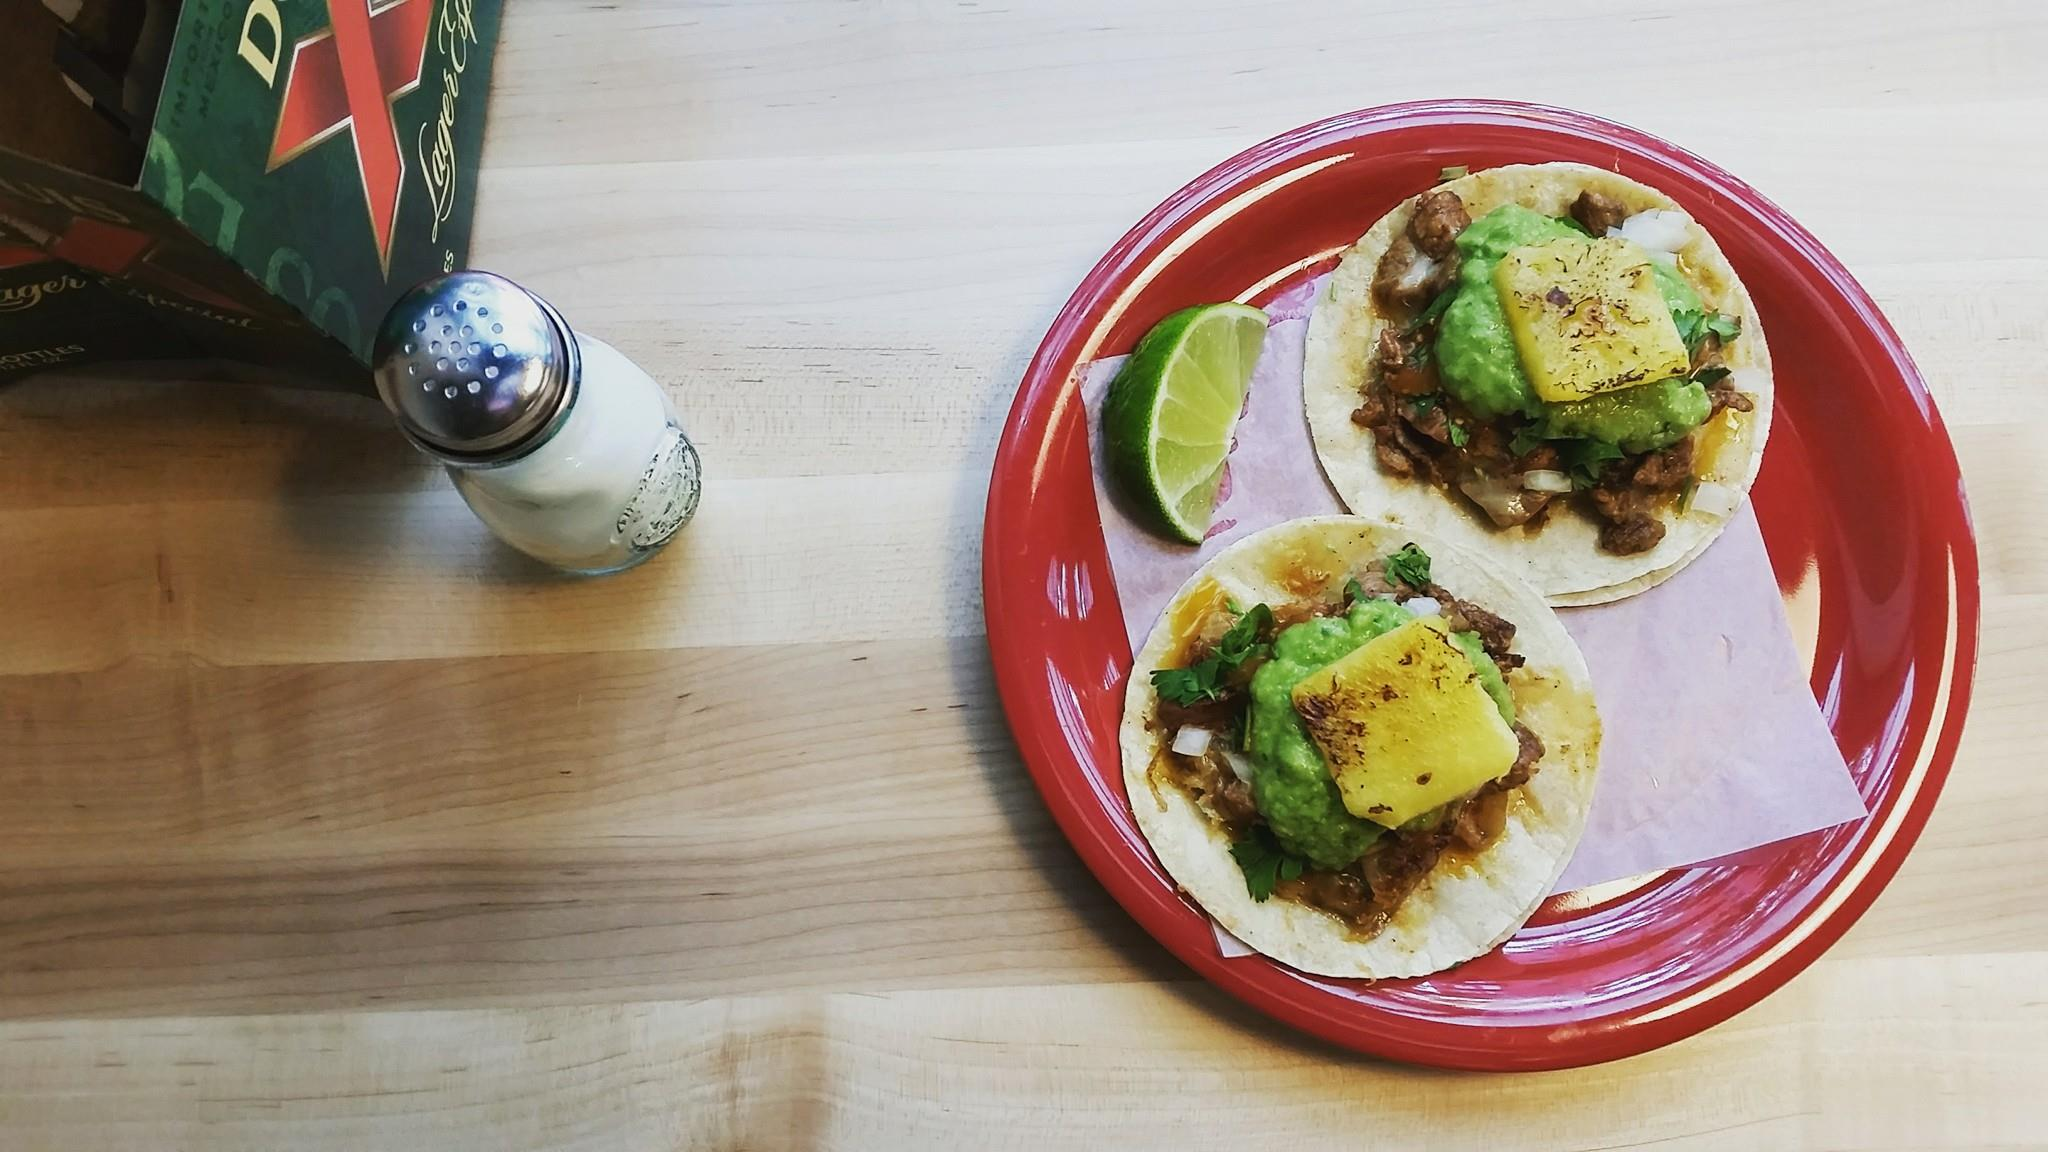 A bird's eye view of adobada pork tacos with guacamole and slices of pineapple on a wooden table, alongside a salt shake.